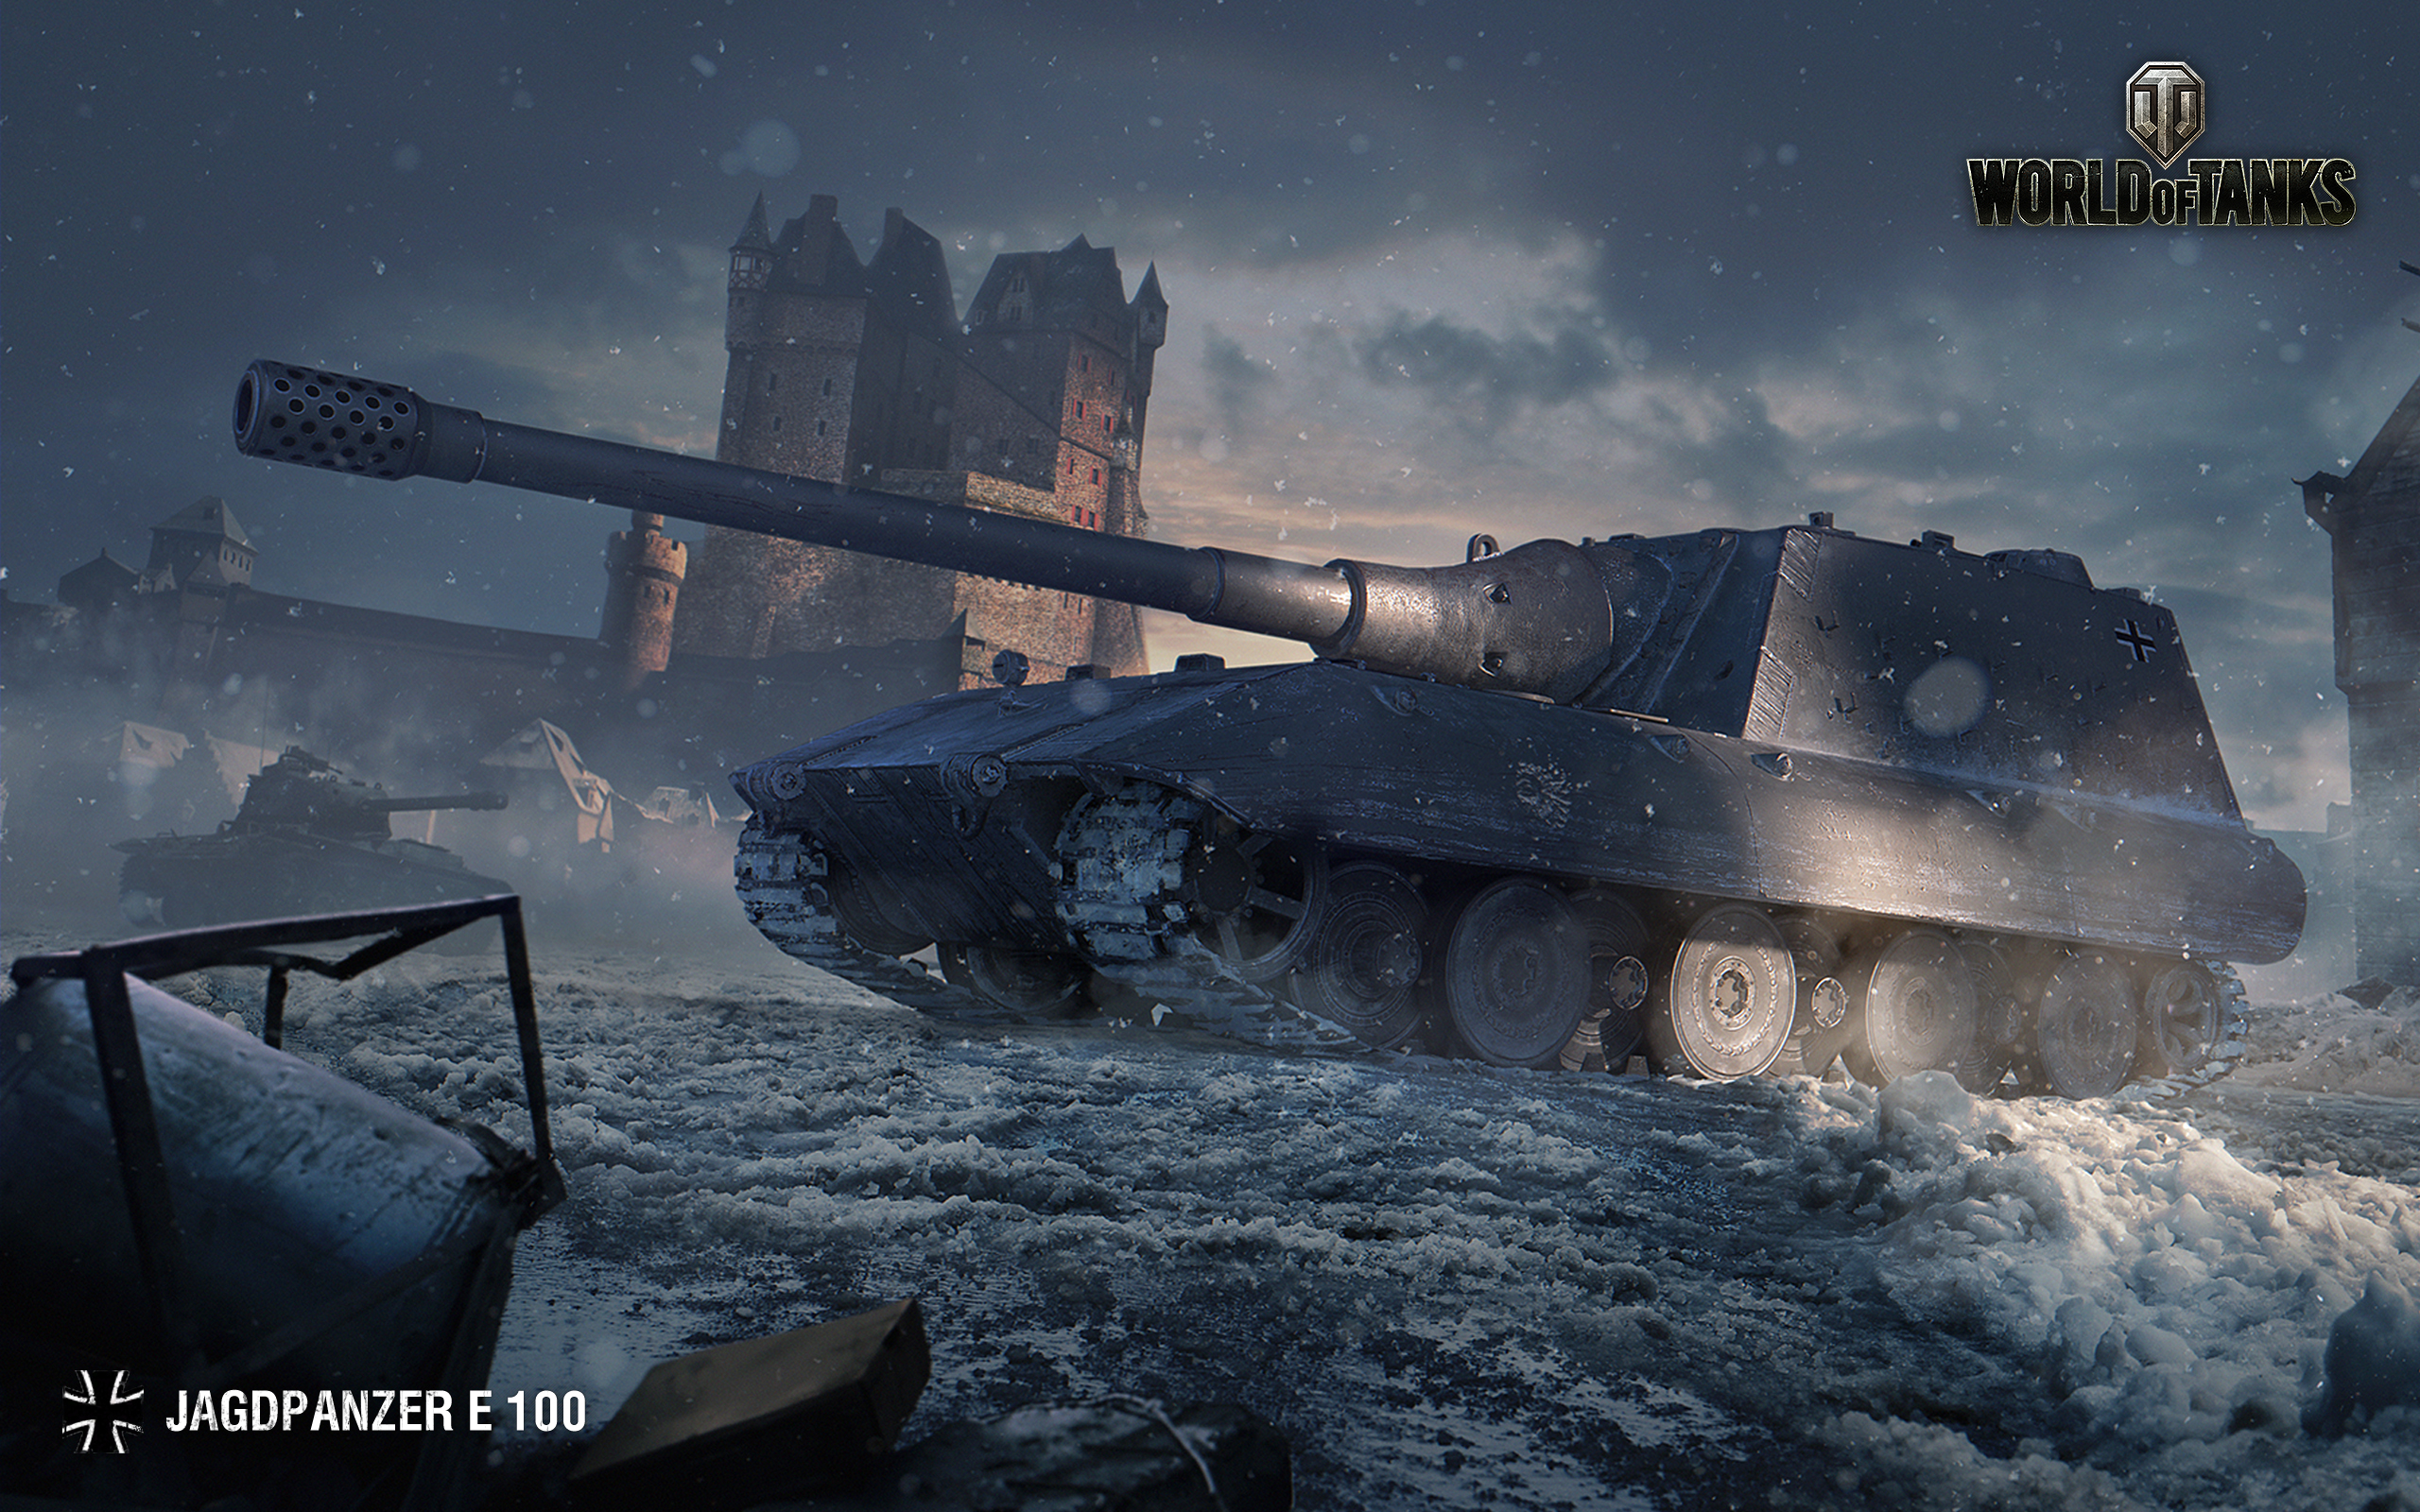 February Wallpaper & Calendar | General News | World of Tanks